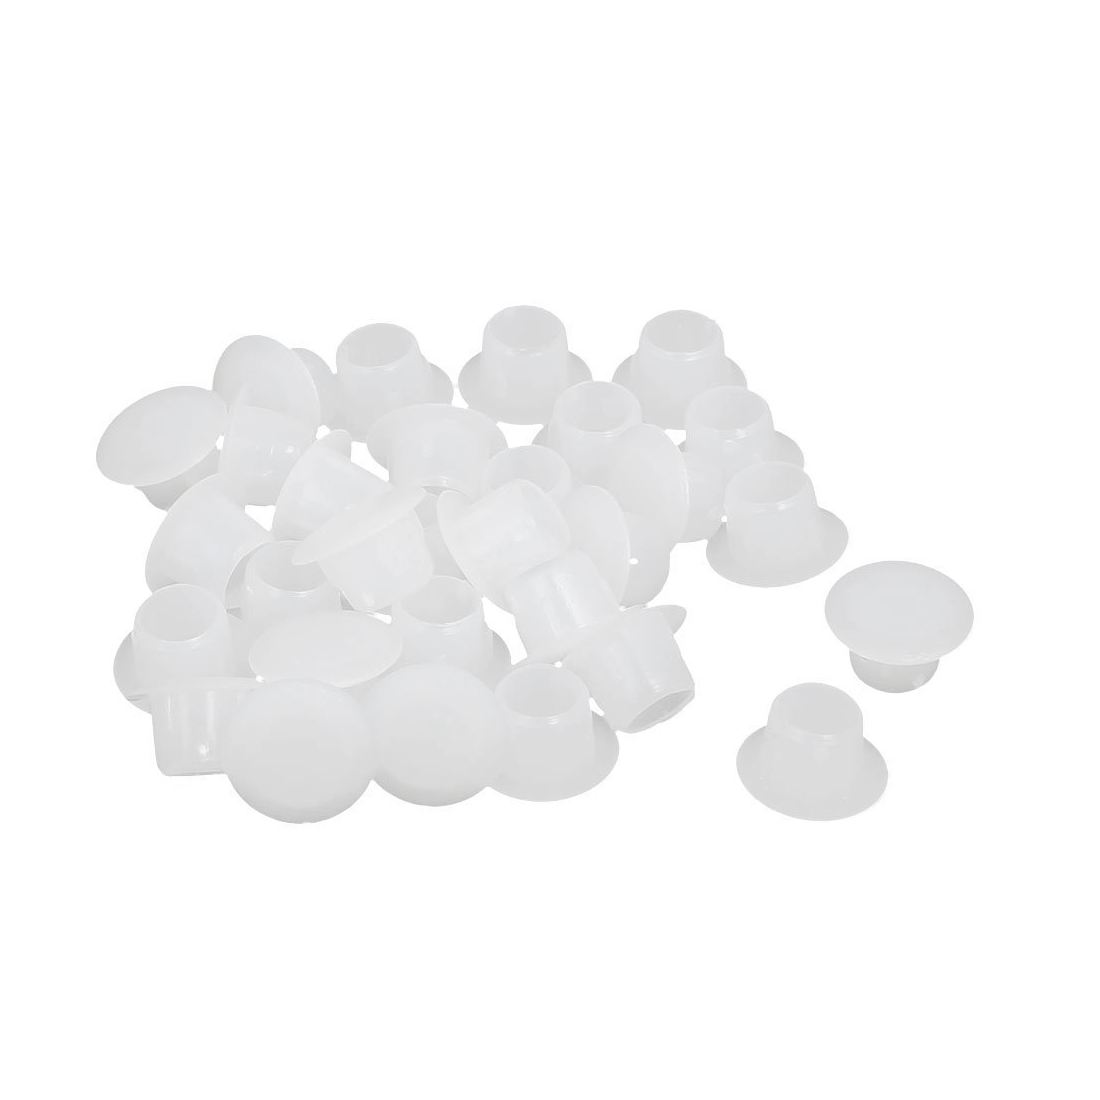 8mm Dia Plastic Straight Line Screw Cap Covers Hole Lids White 30pcs